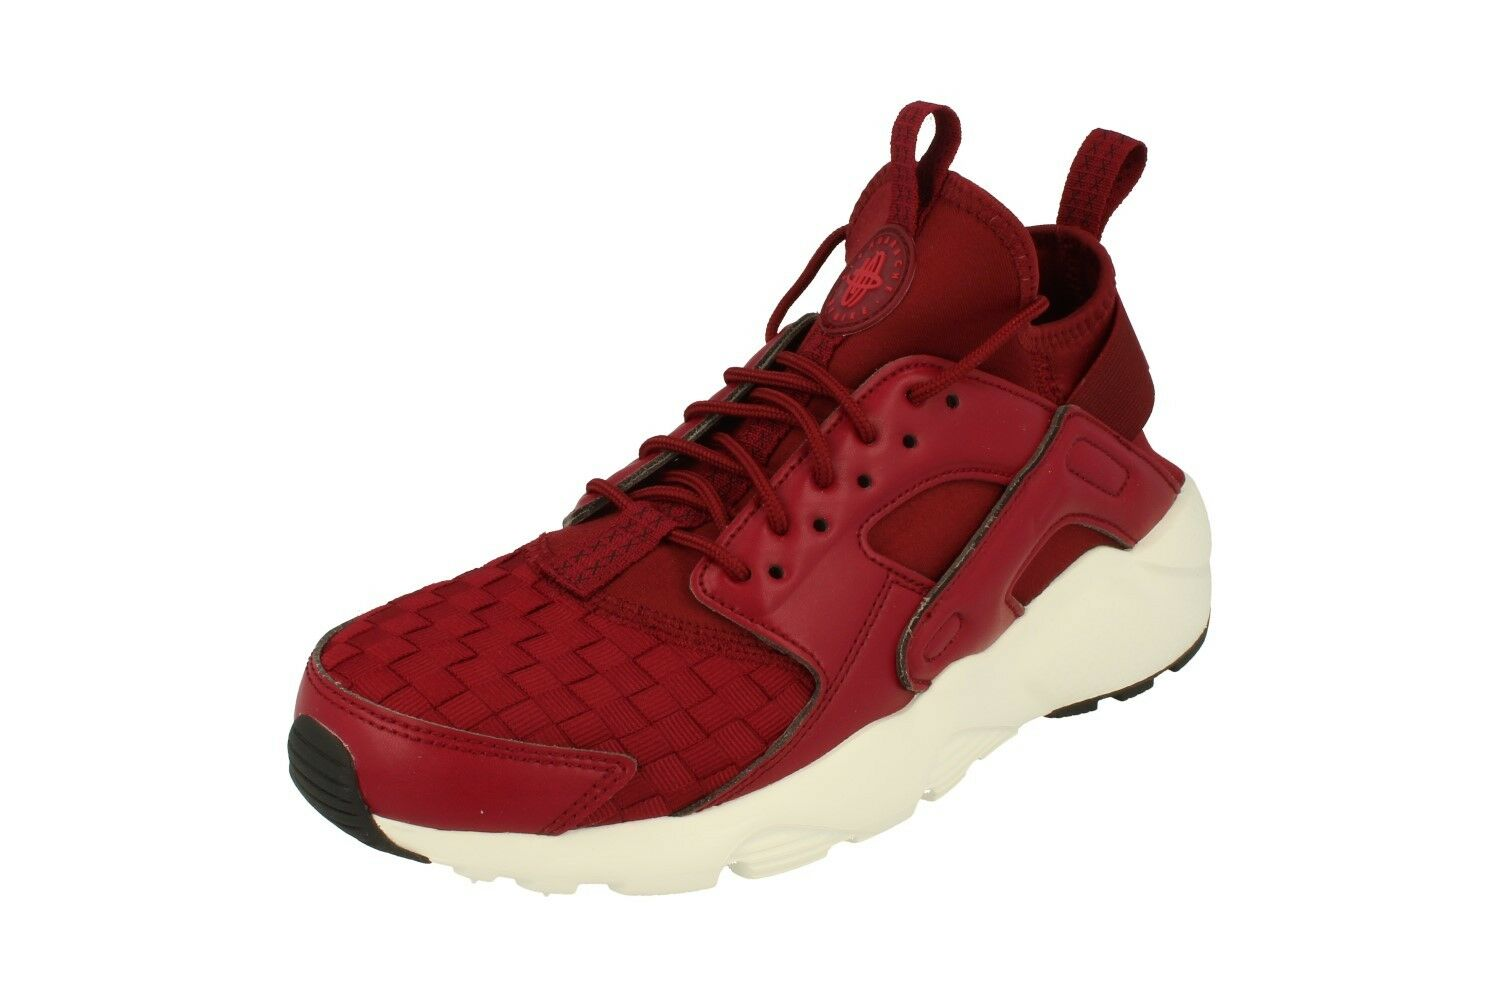 Nike Huarache Run Ultra Se Mens Running Trainers 875841 Sneakers shoes 602